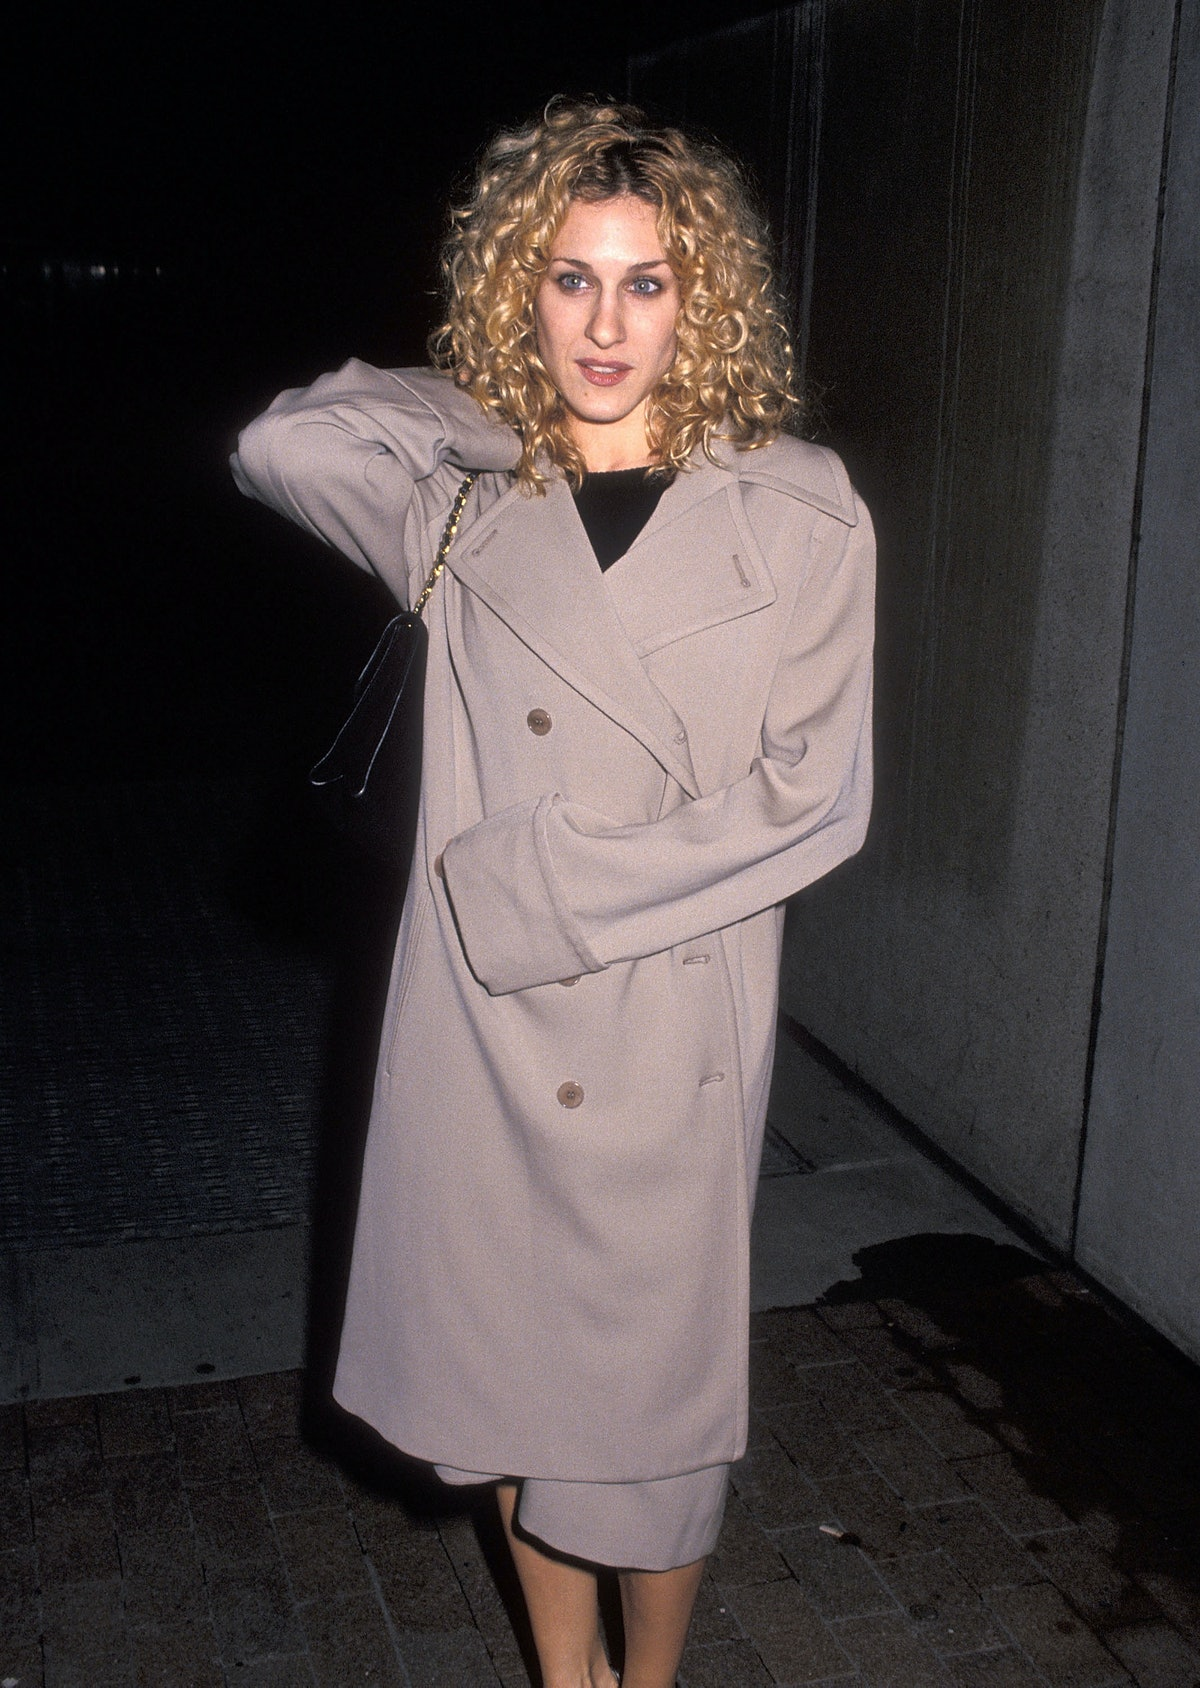 Sarah Jessica Parker with curly hair in 1994